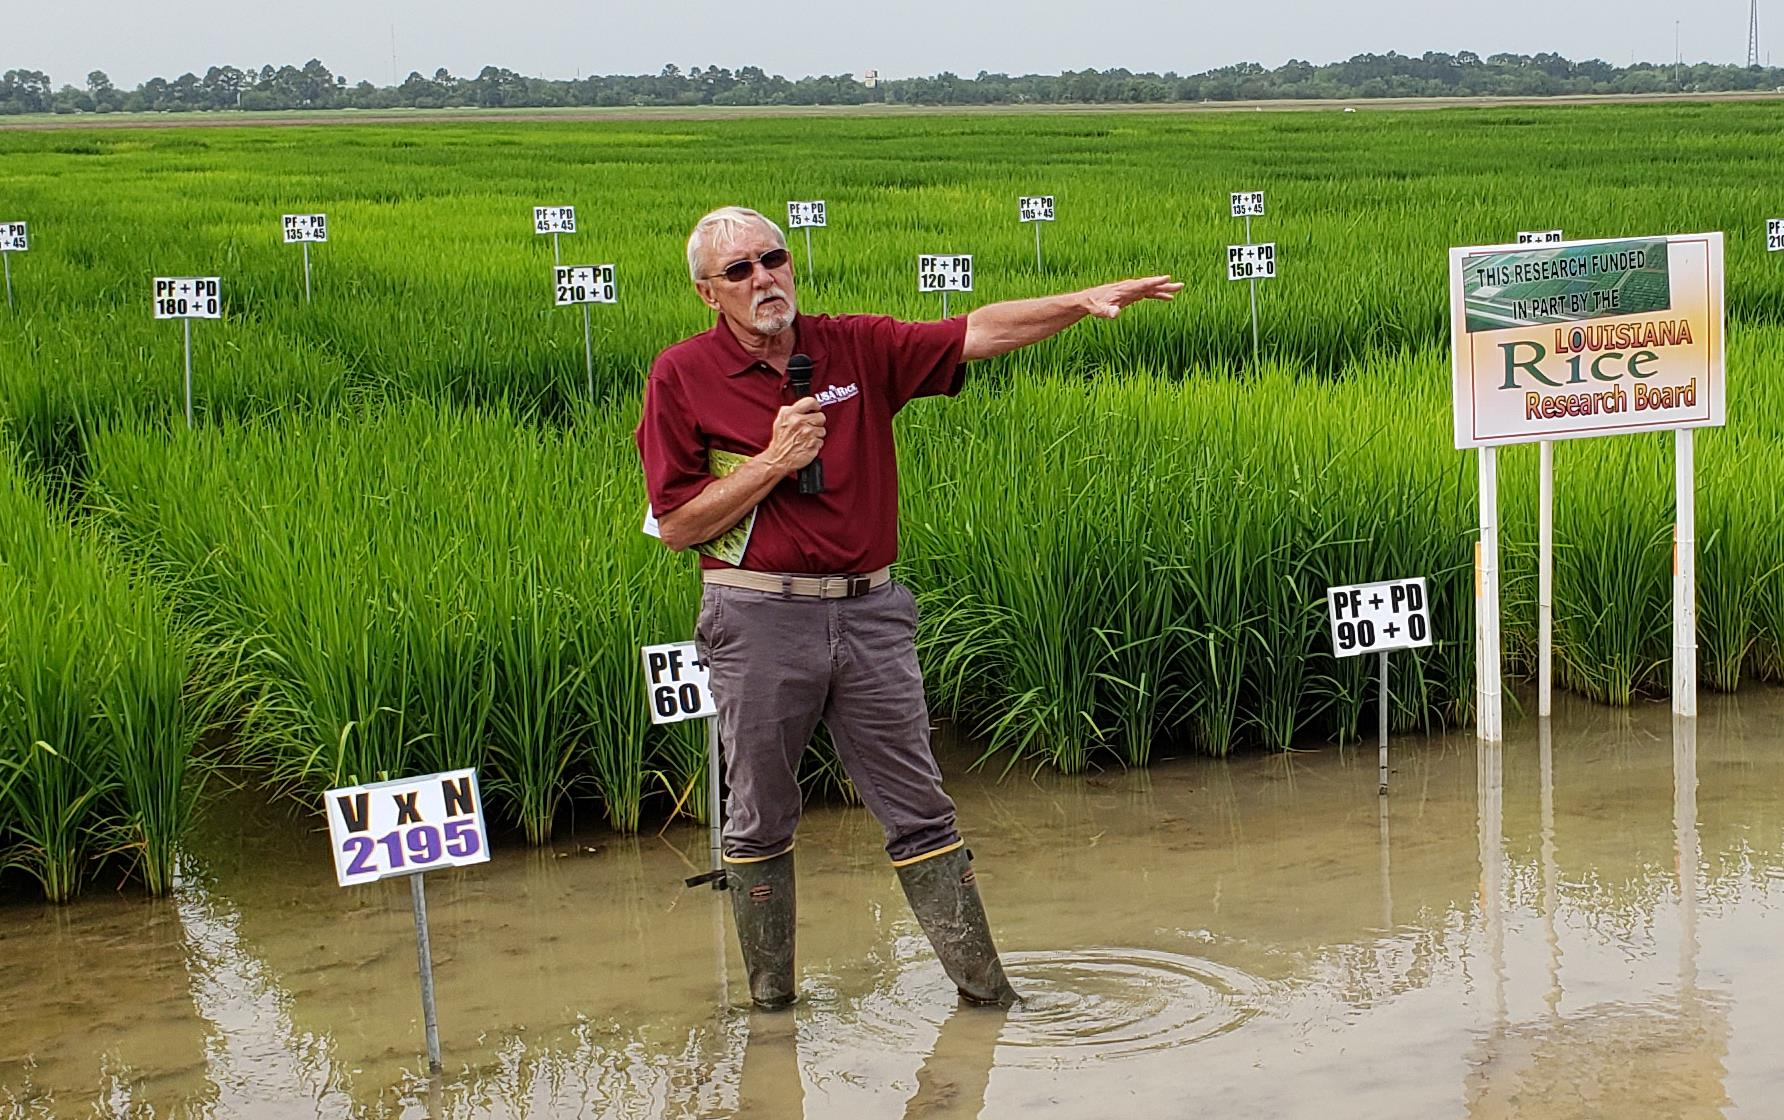 Man wearing knee-high boots, holding a mic and pointing, stands in flooded rice field